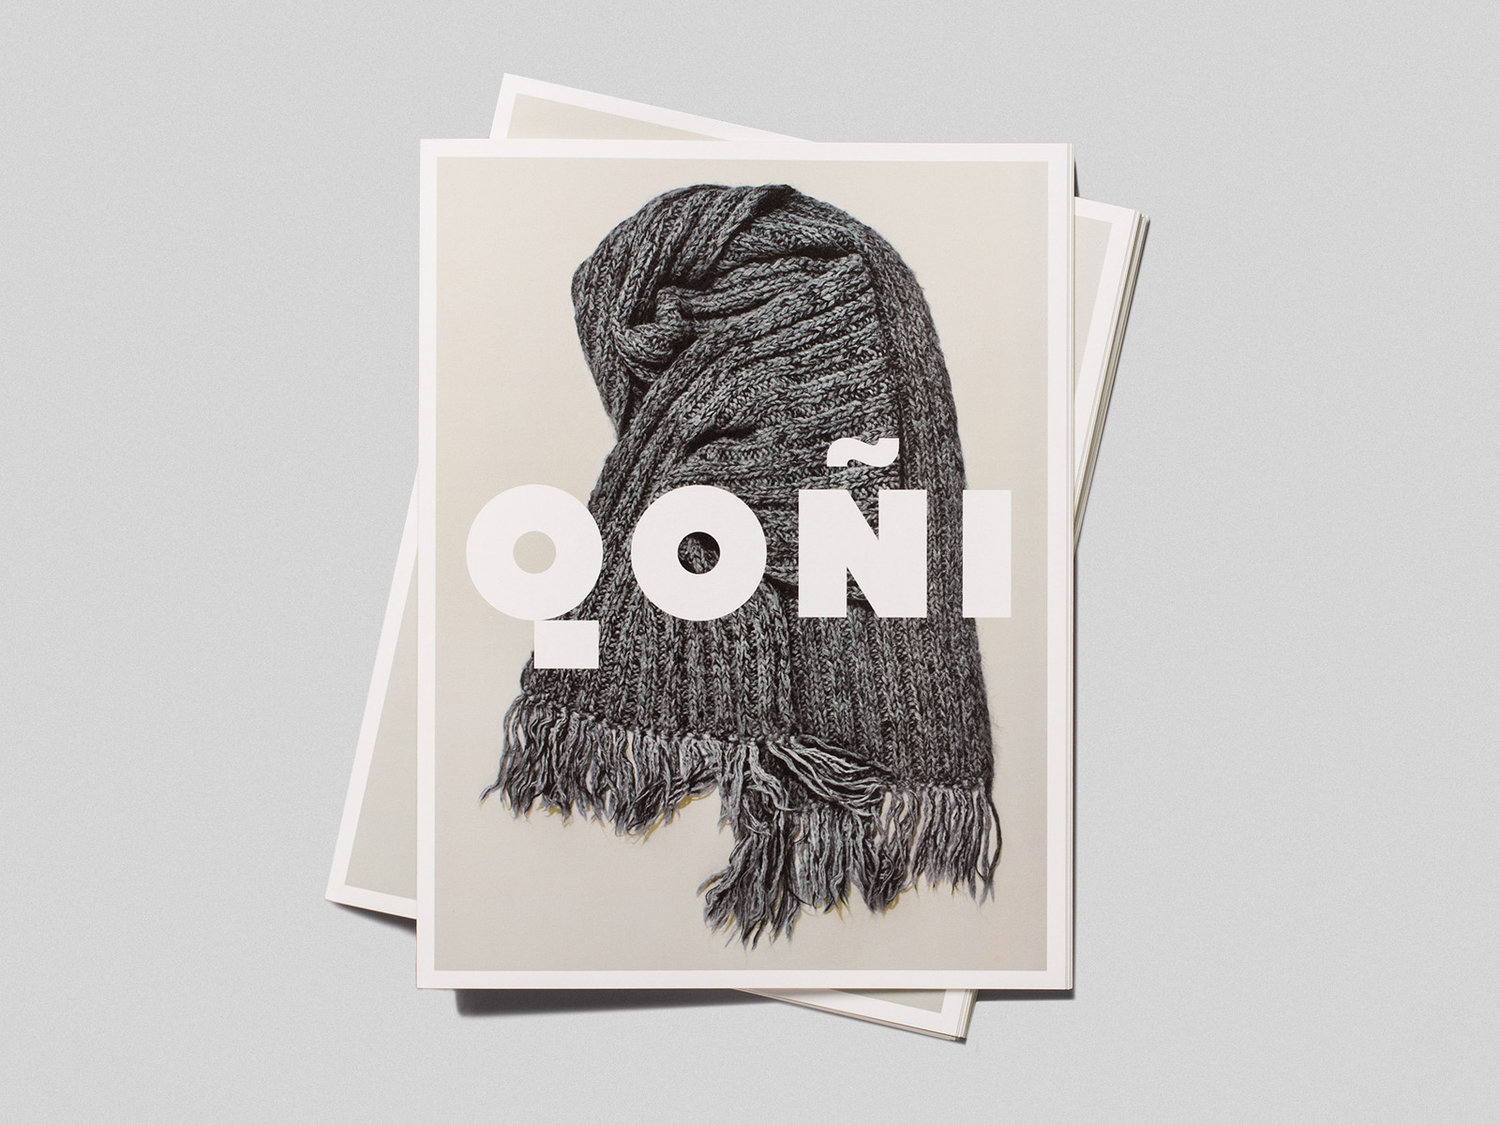 Brand identity and lookbook by Toronto-based Leo Burnett Design for Peruvian handmade knitwear brand Qoñi